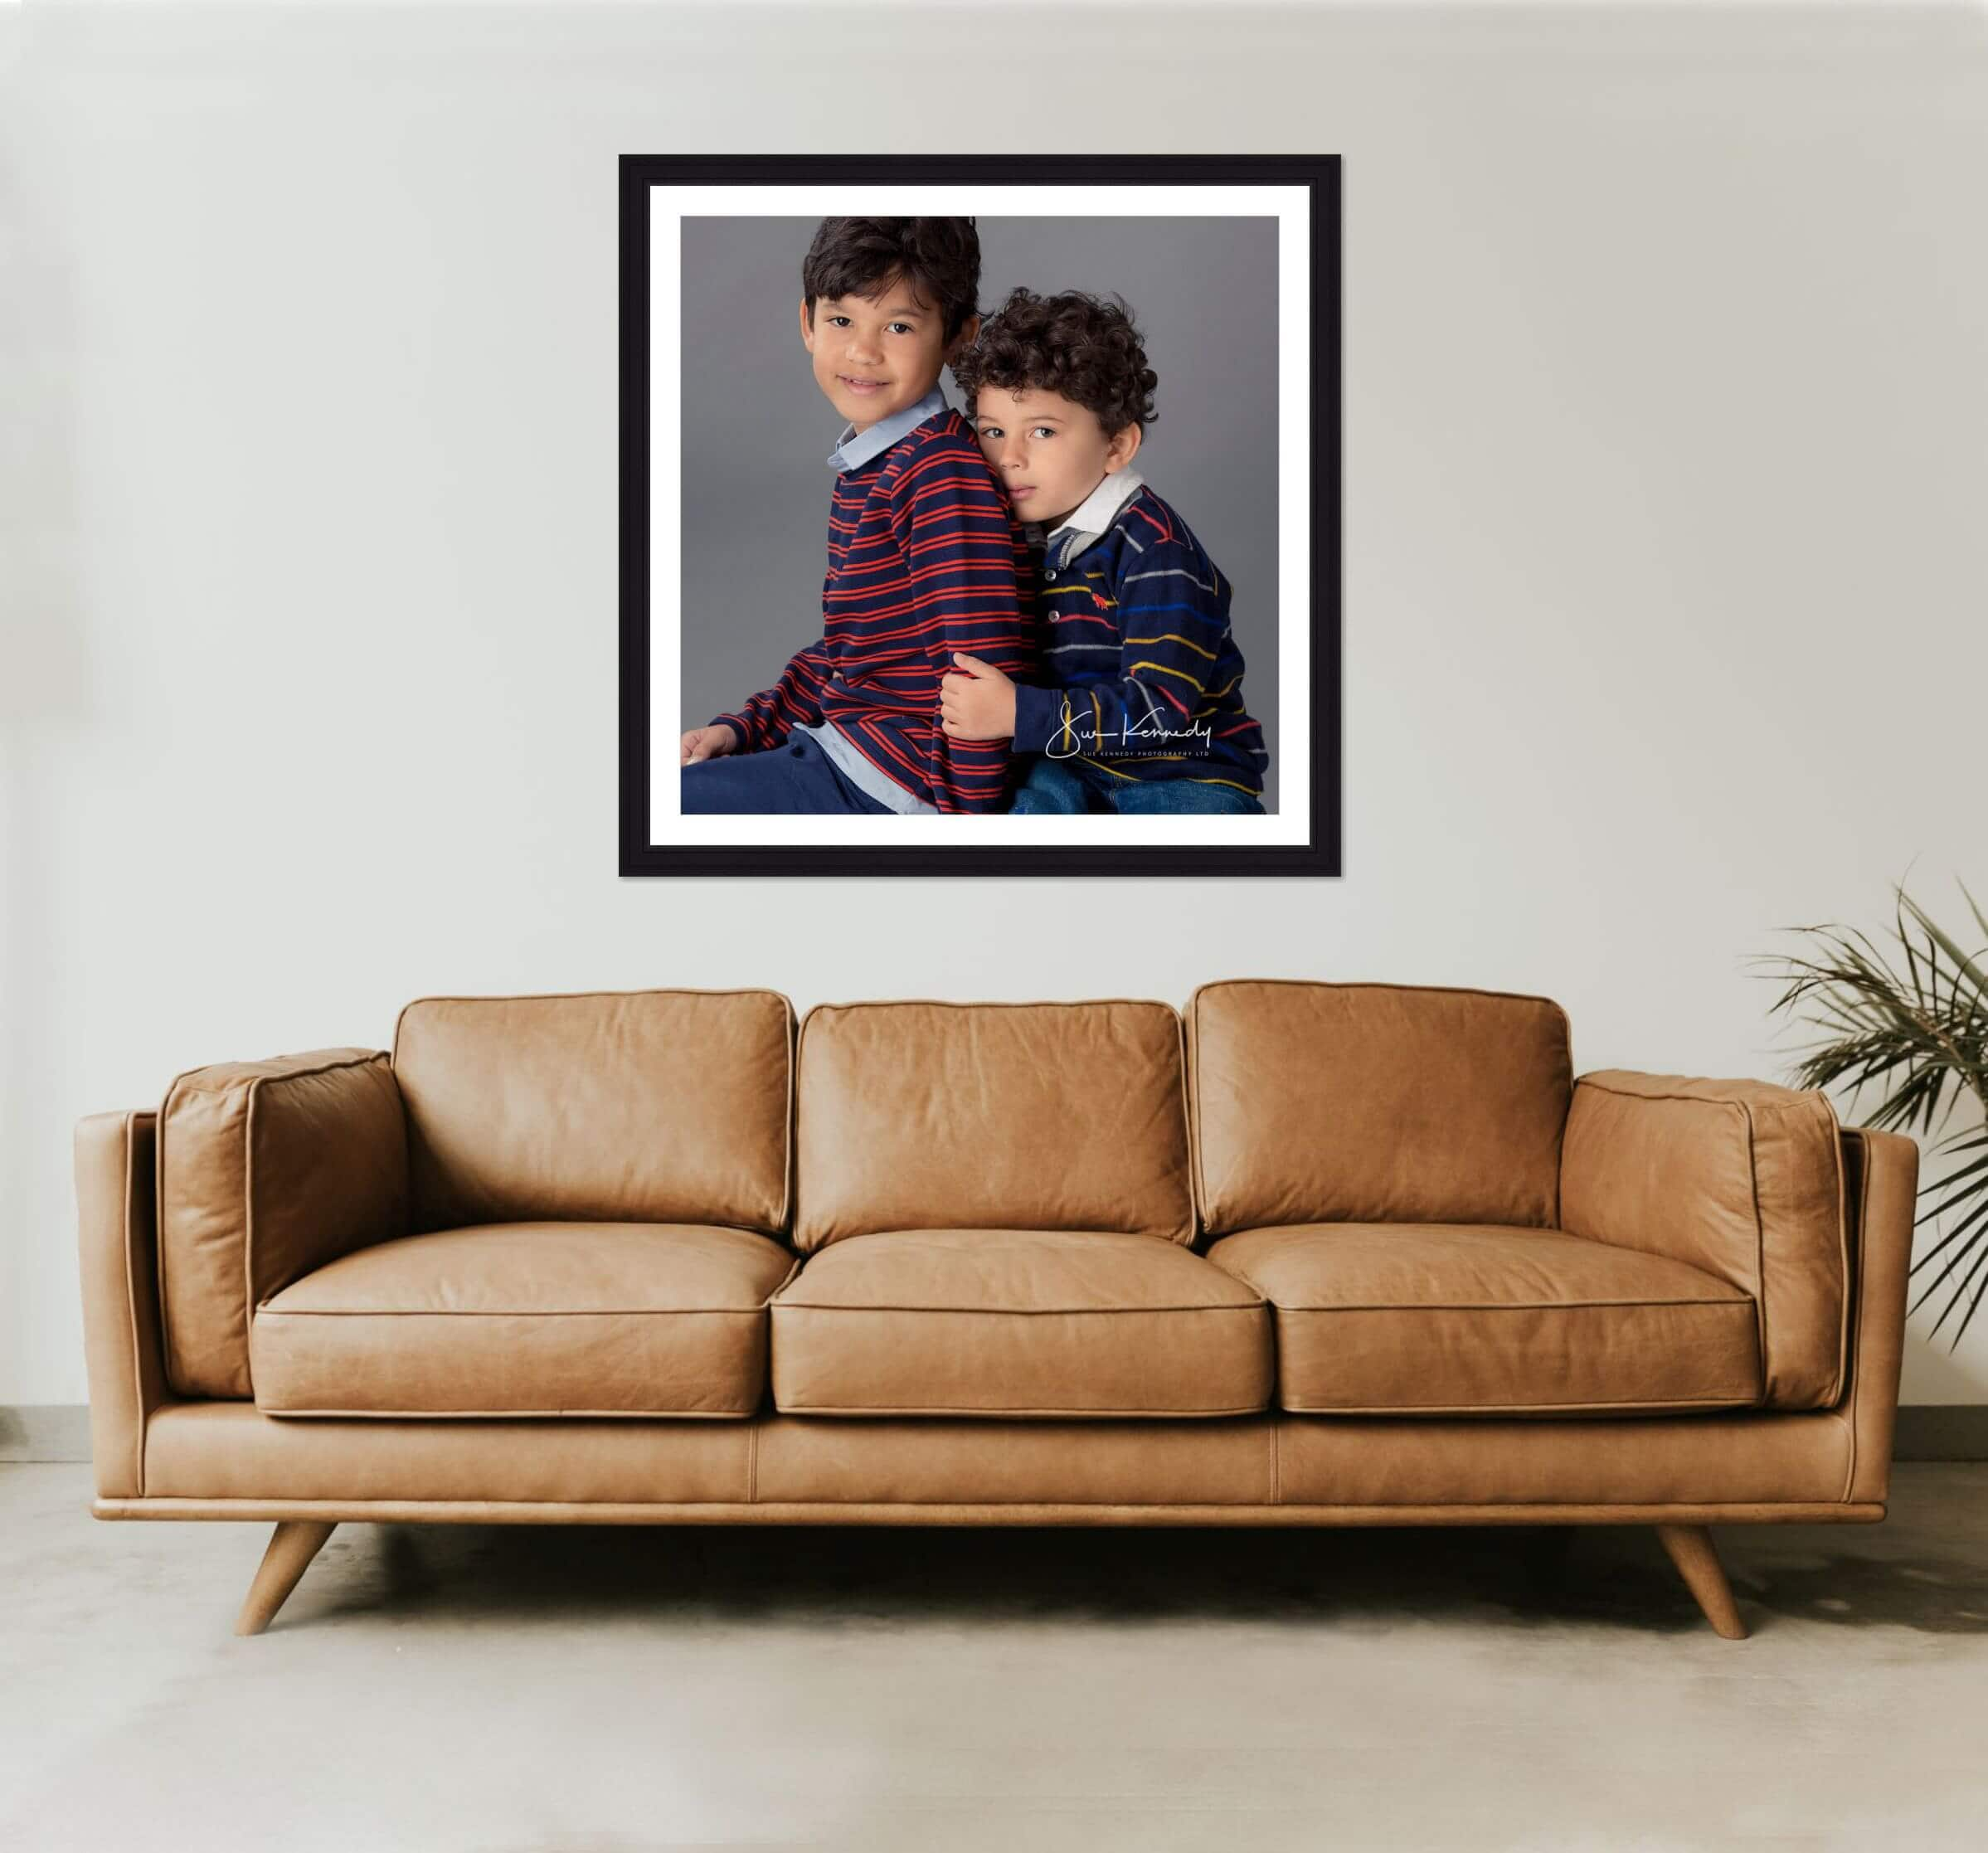 living room scene with framed wall art